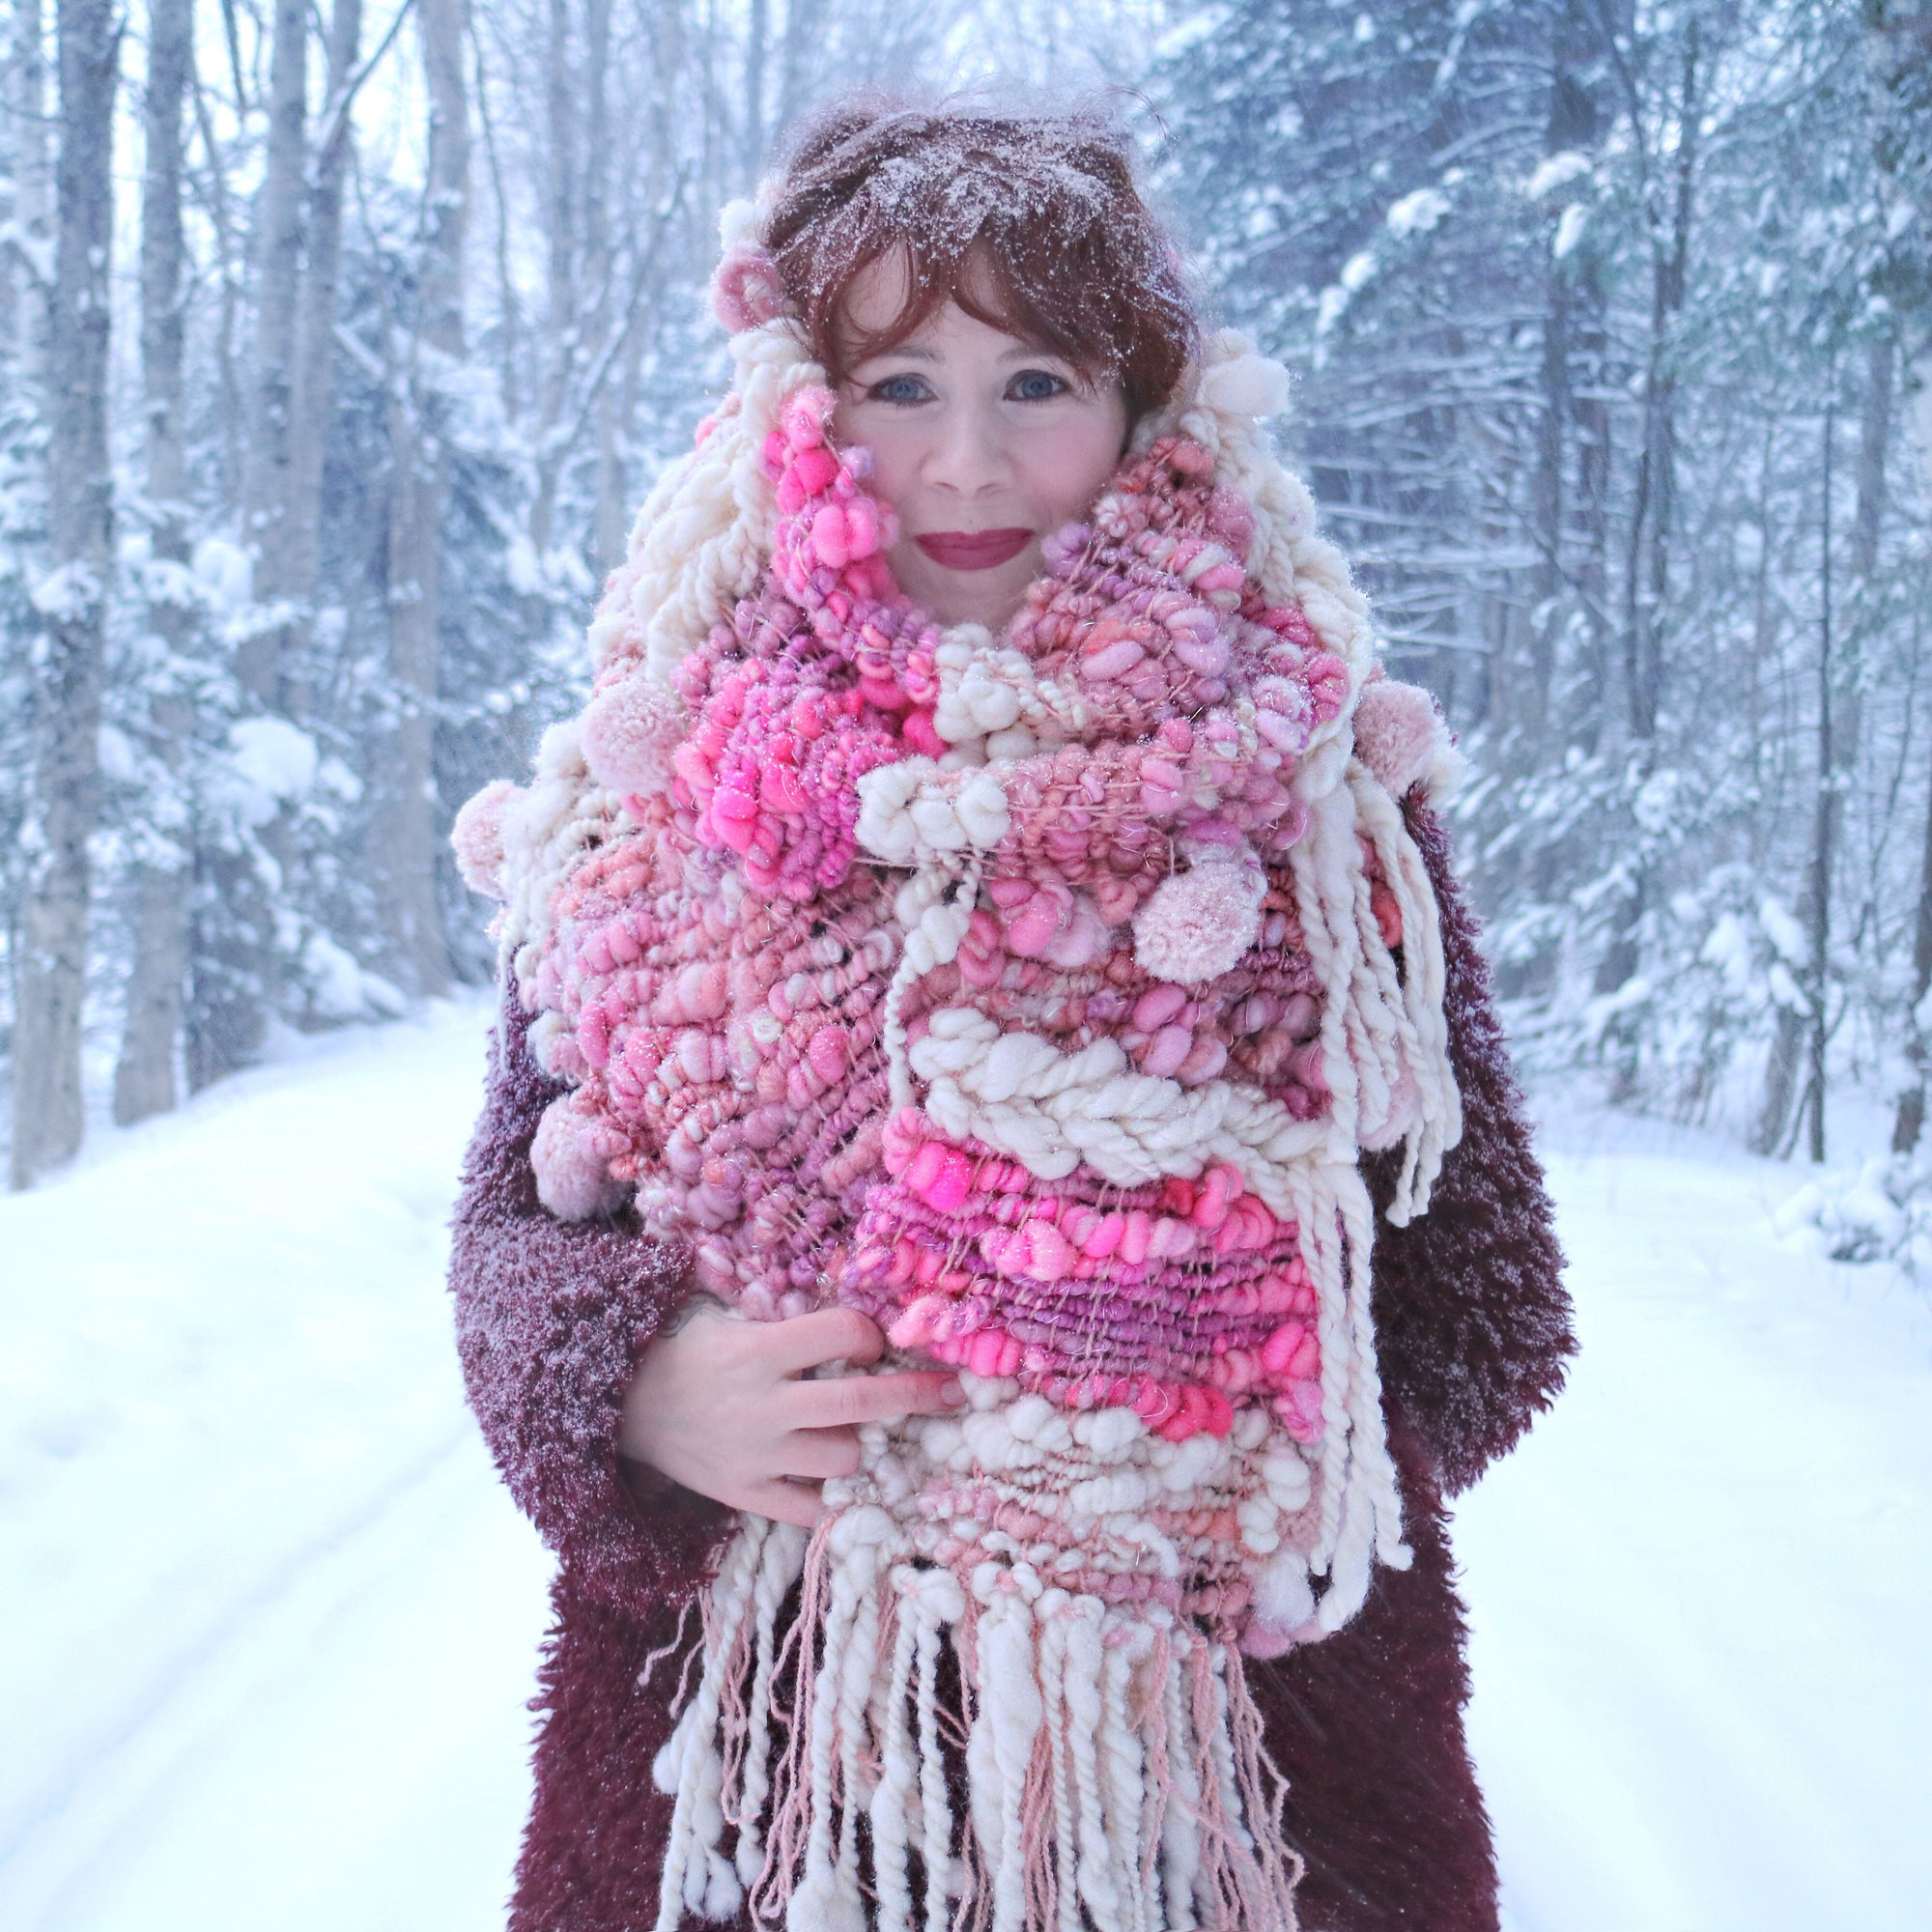 Giant Pink scarf 100% Wool - Foulard Géant 100% laine rose